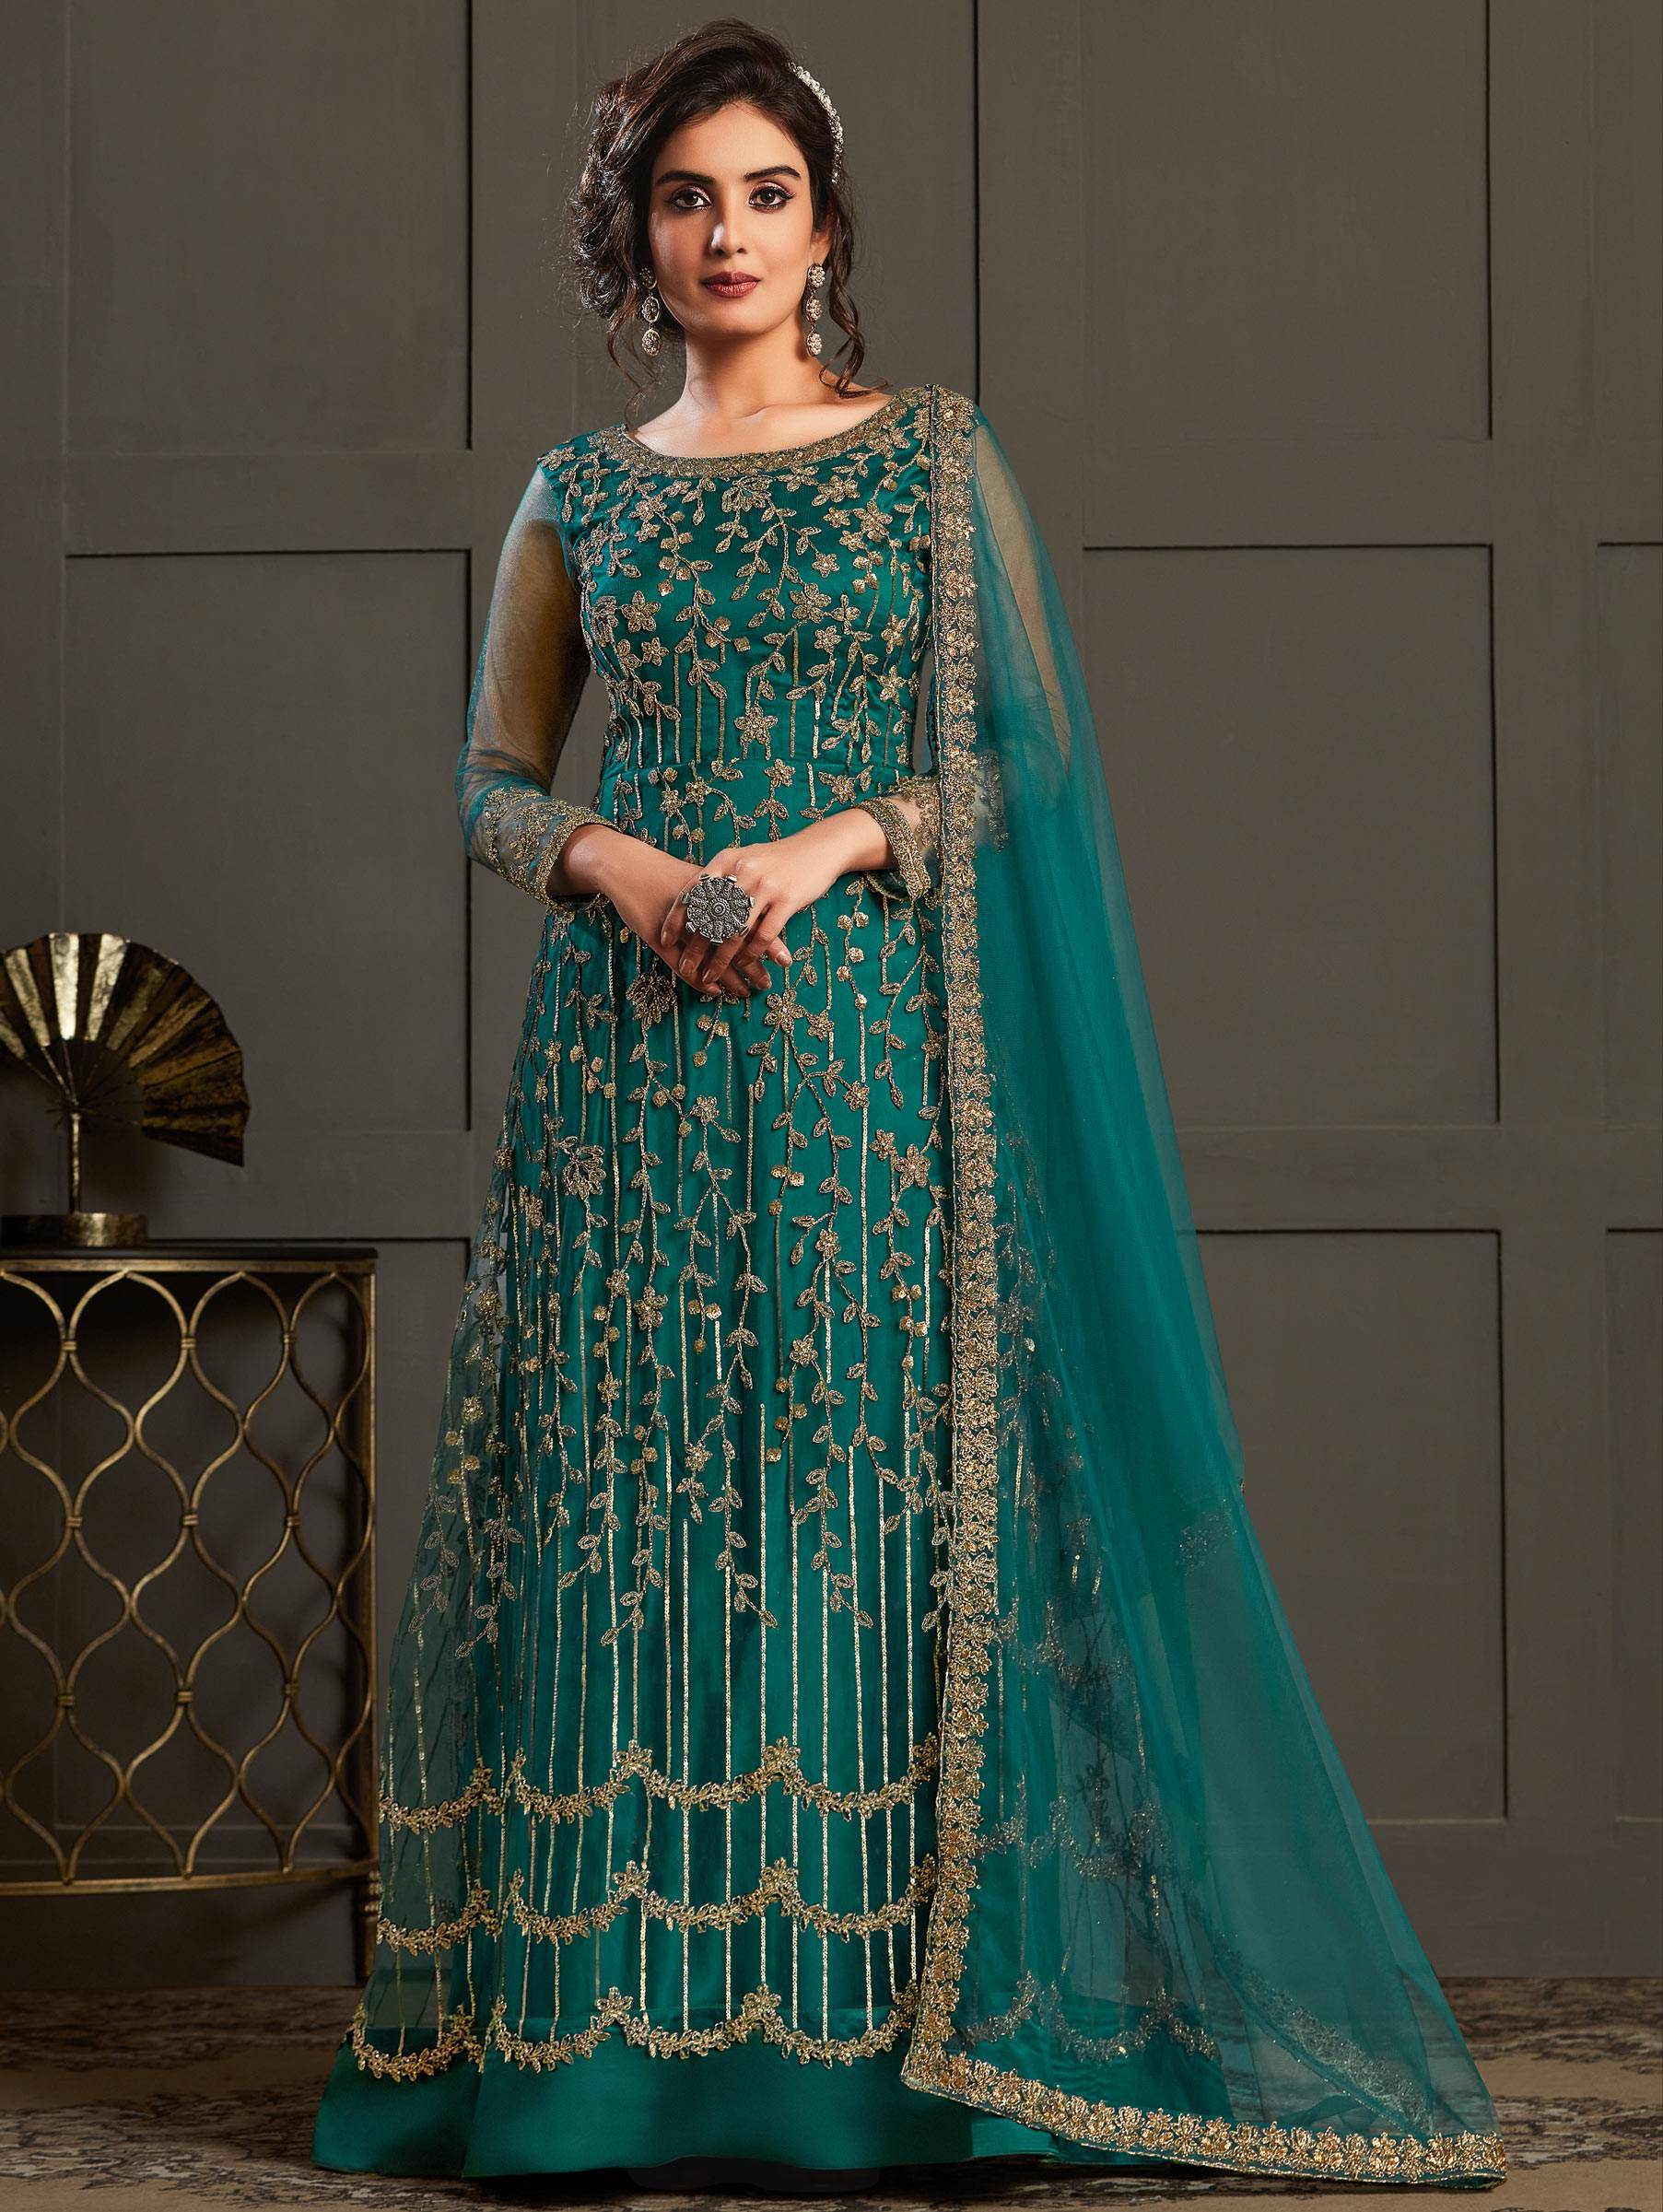 Peacock Blue Heavy Embroidered Net Gown with Dupatta